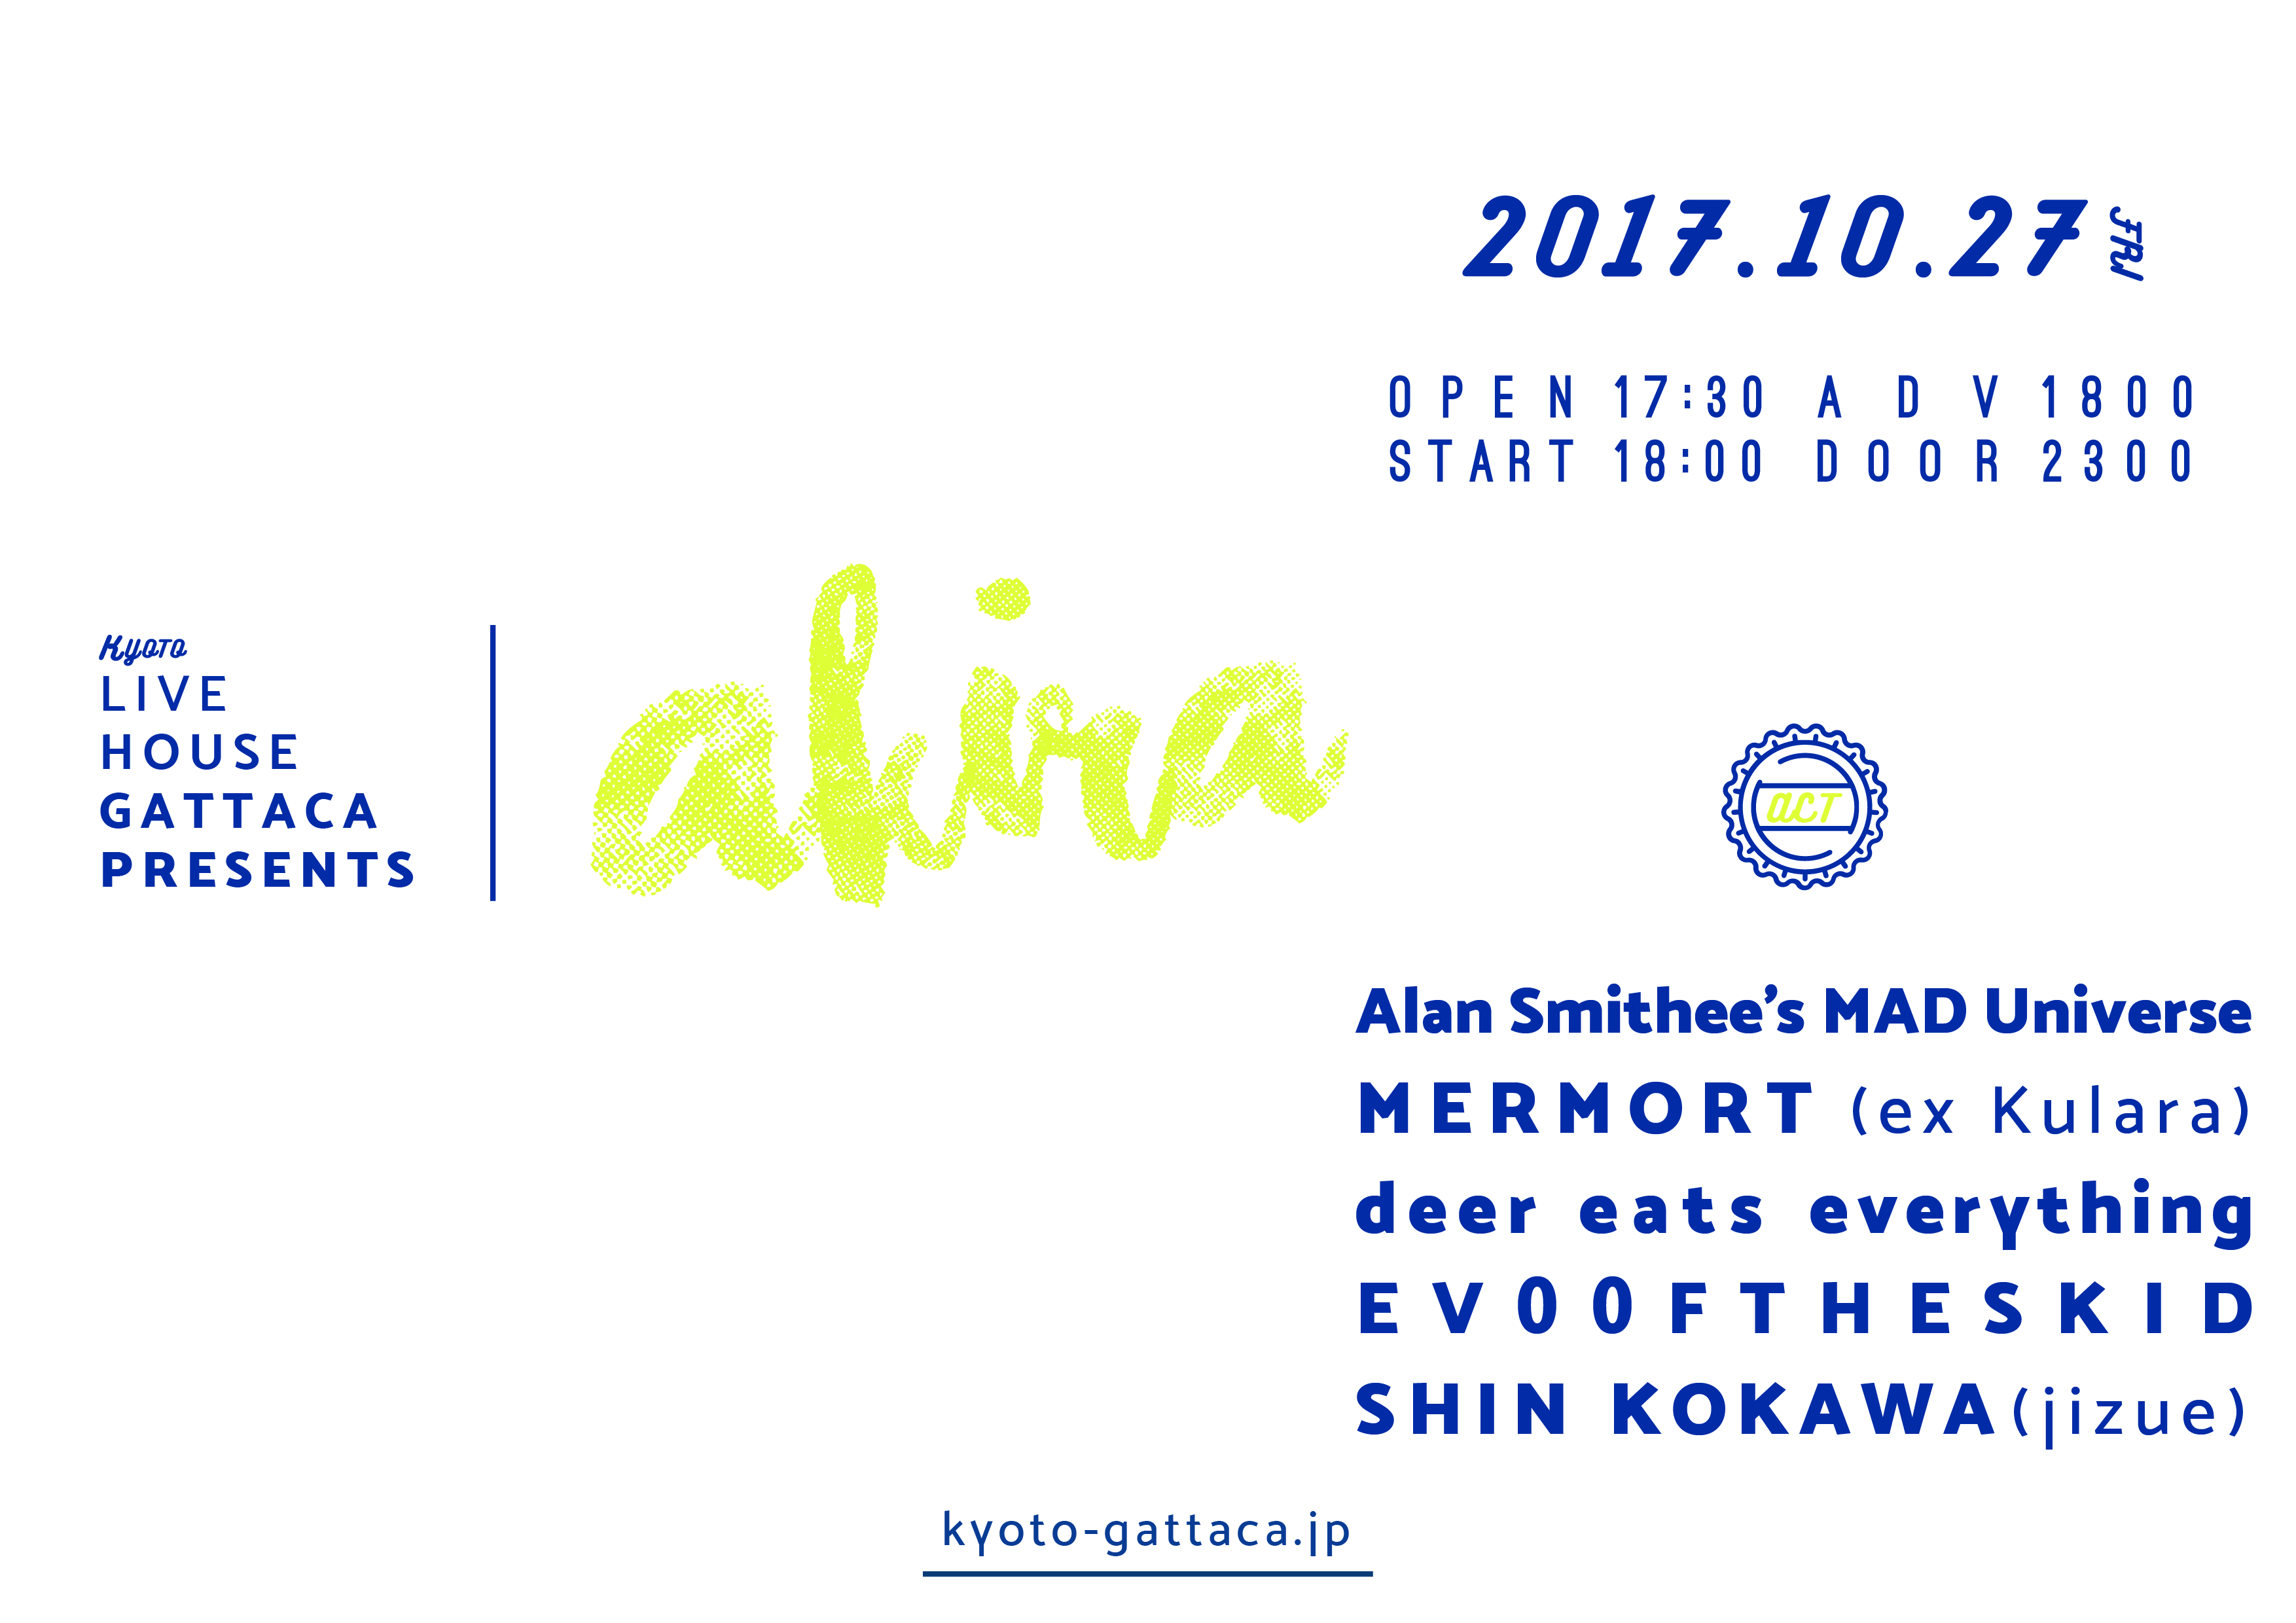 Alan Smithee's MAD Universe 2017.10.07 CLUB SONIC